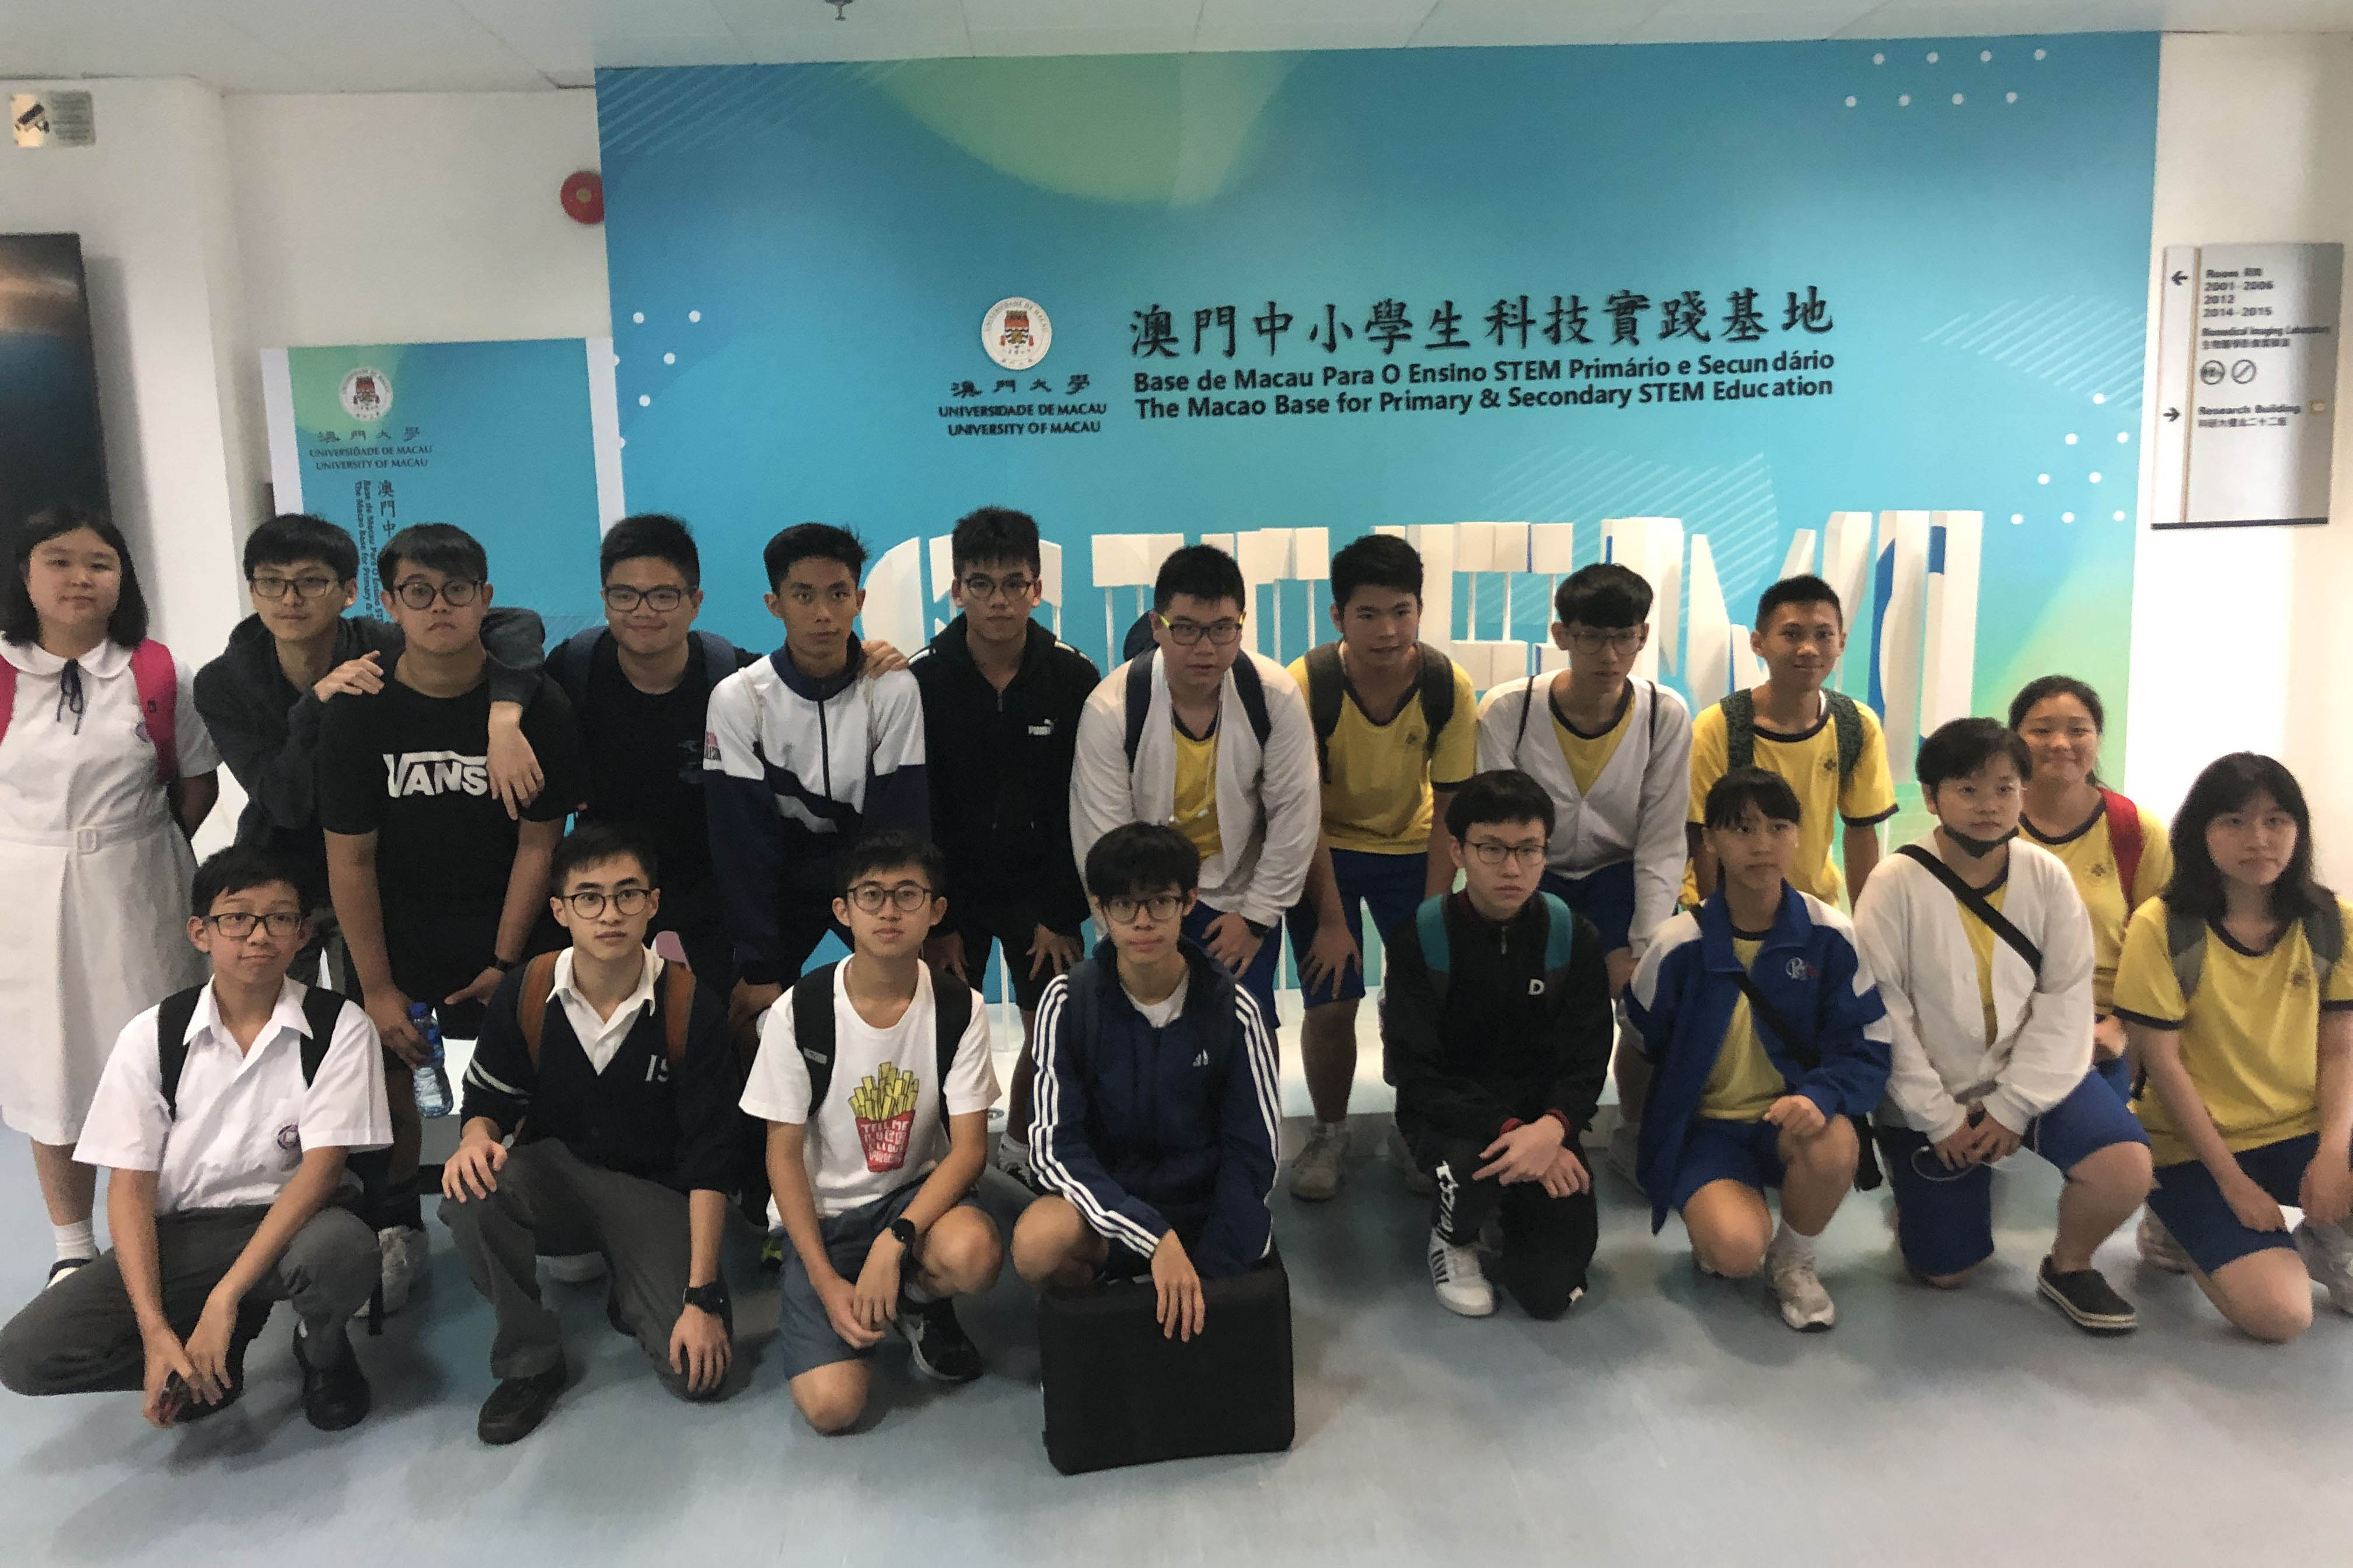 The students visit the Macao Base for Primary and Secondary STEM Education